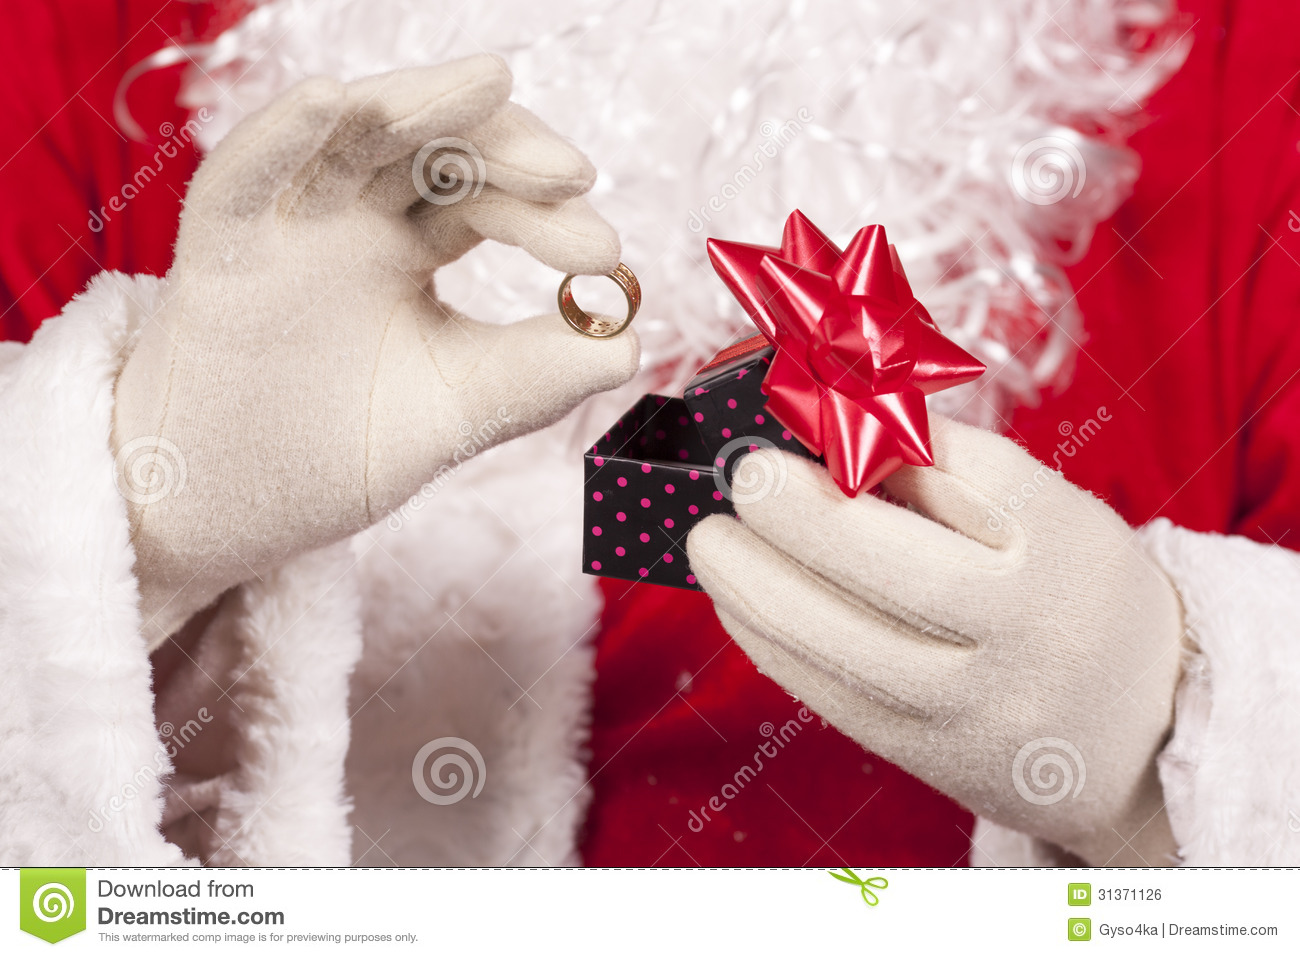 Jewelry Ring Gift Santa Claus Royalty Free Stock Image ...